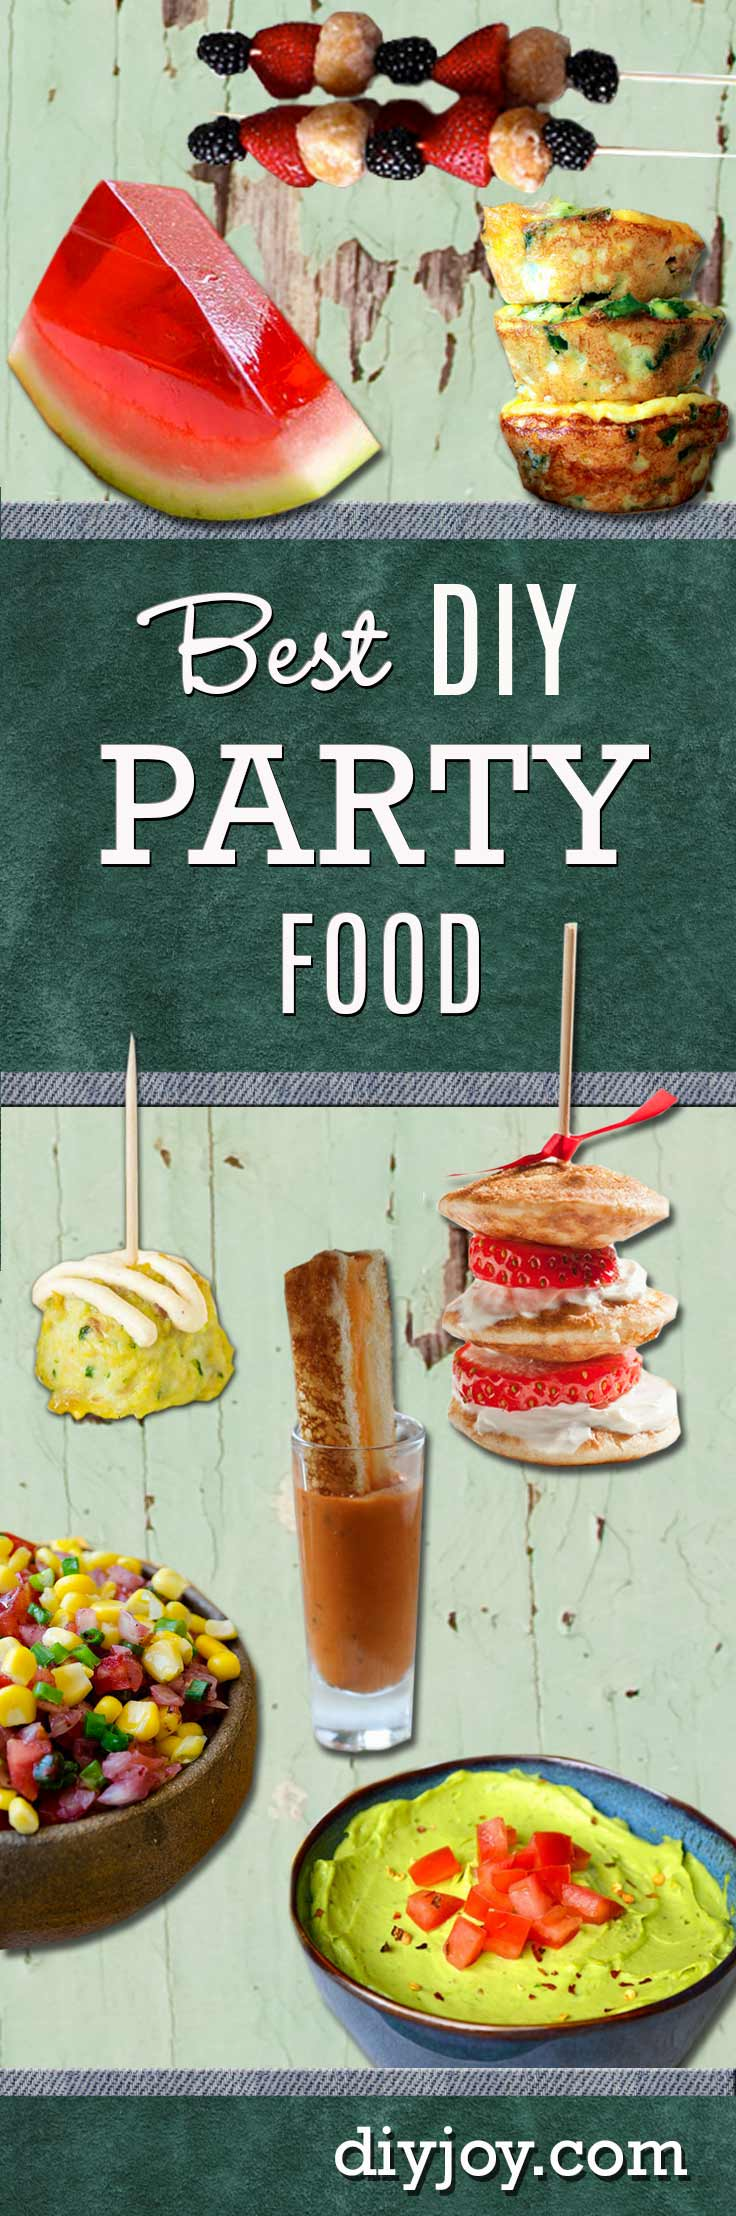 Best DIY Party Food Ideas - Quick Recipes, Snacks, Appetizers, Finger Foods, Desserts and Easy Entrees to Serve for a Crowd, BBQ or Group Get Together. Cool Foods and Recipes for Fourth of July, Labor Day, Memorial Day and Other Fun Parties